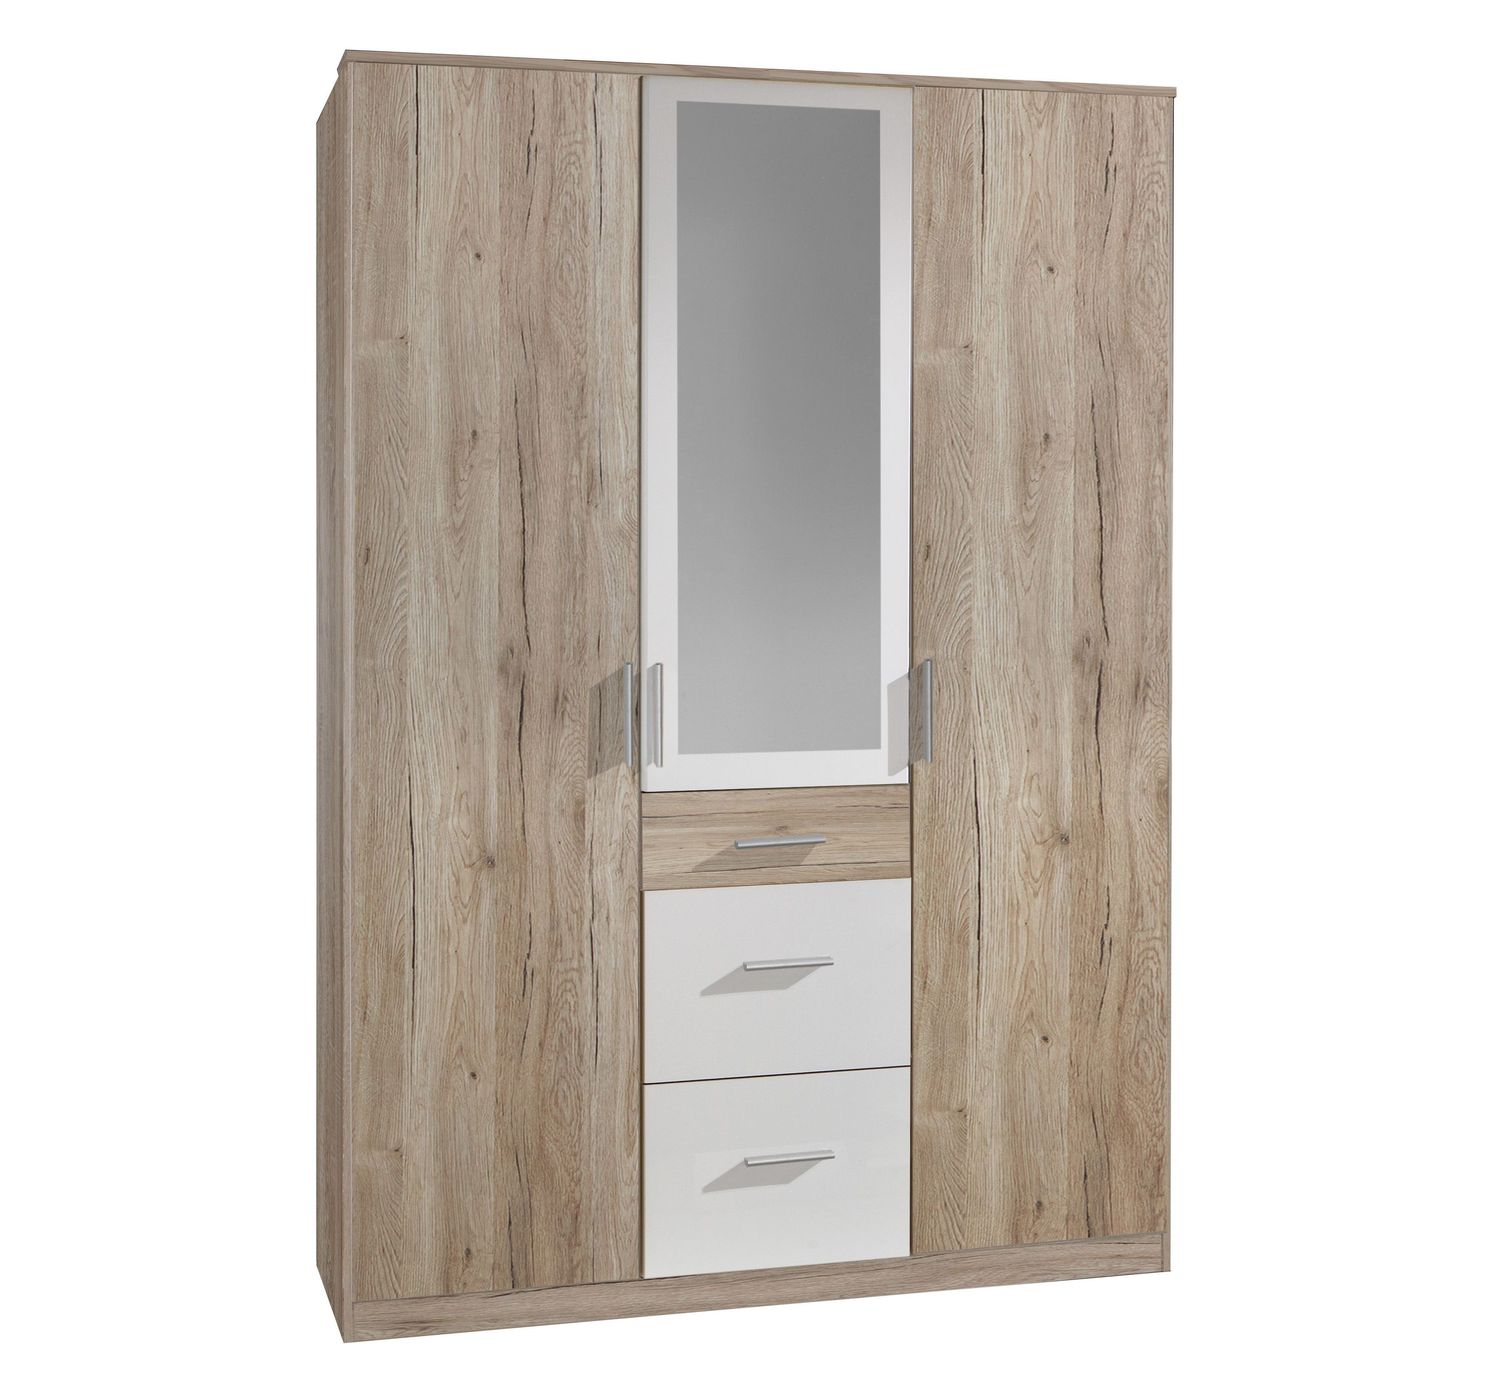 kleiderschrank eiche dekor und alpinwei mit 3 schubladen zagra. Black Bedroom Furniture Sets. Home Design Ideas